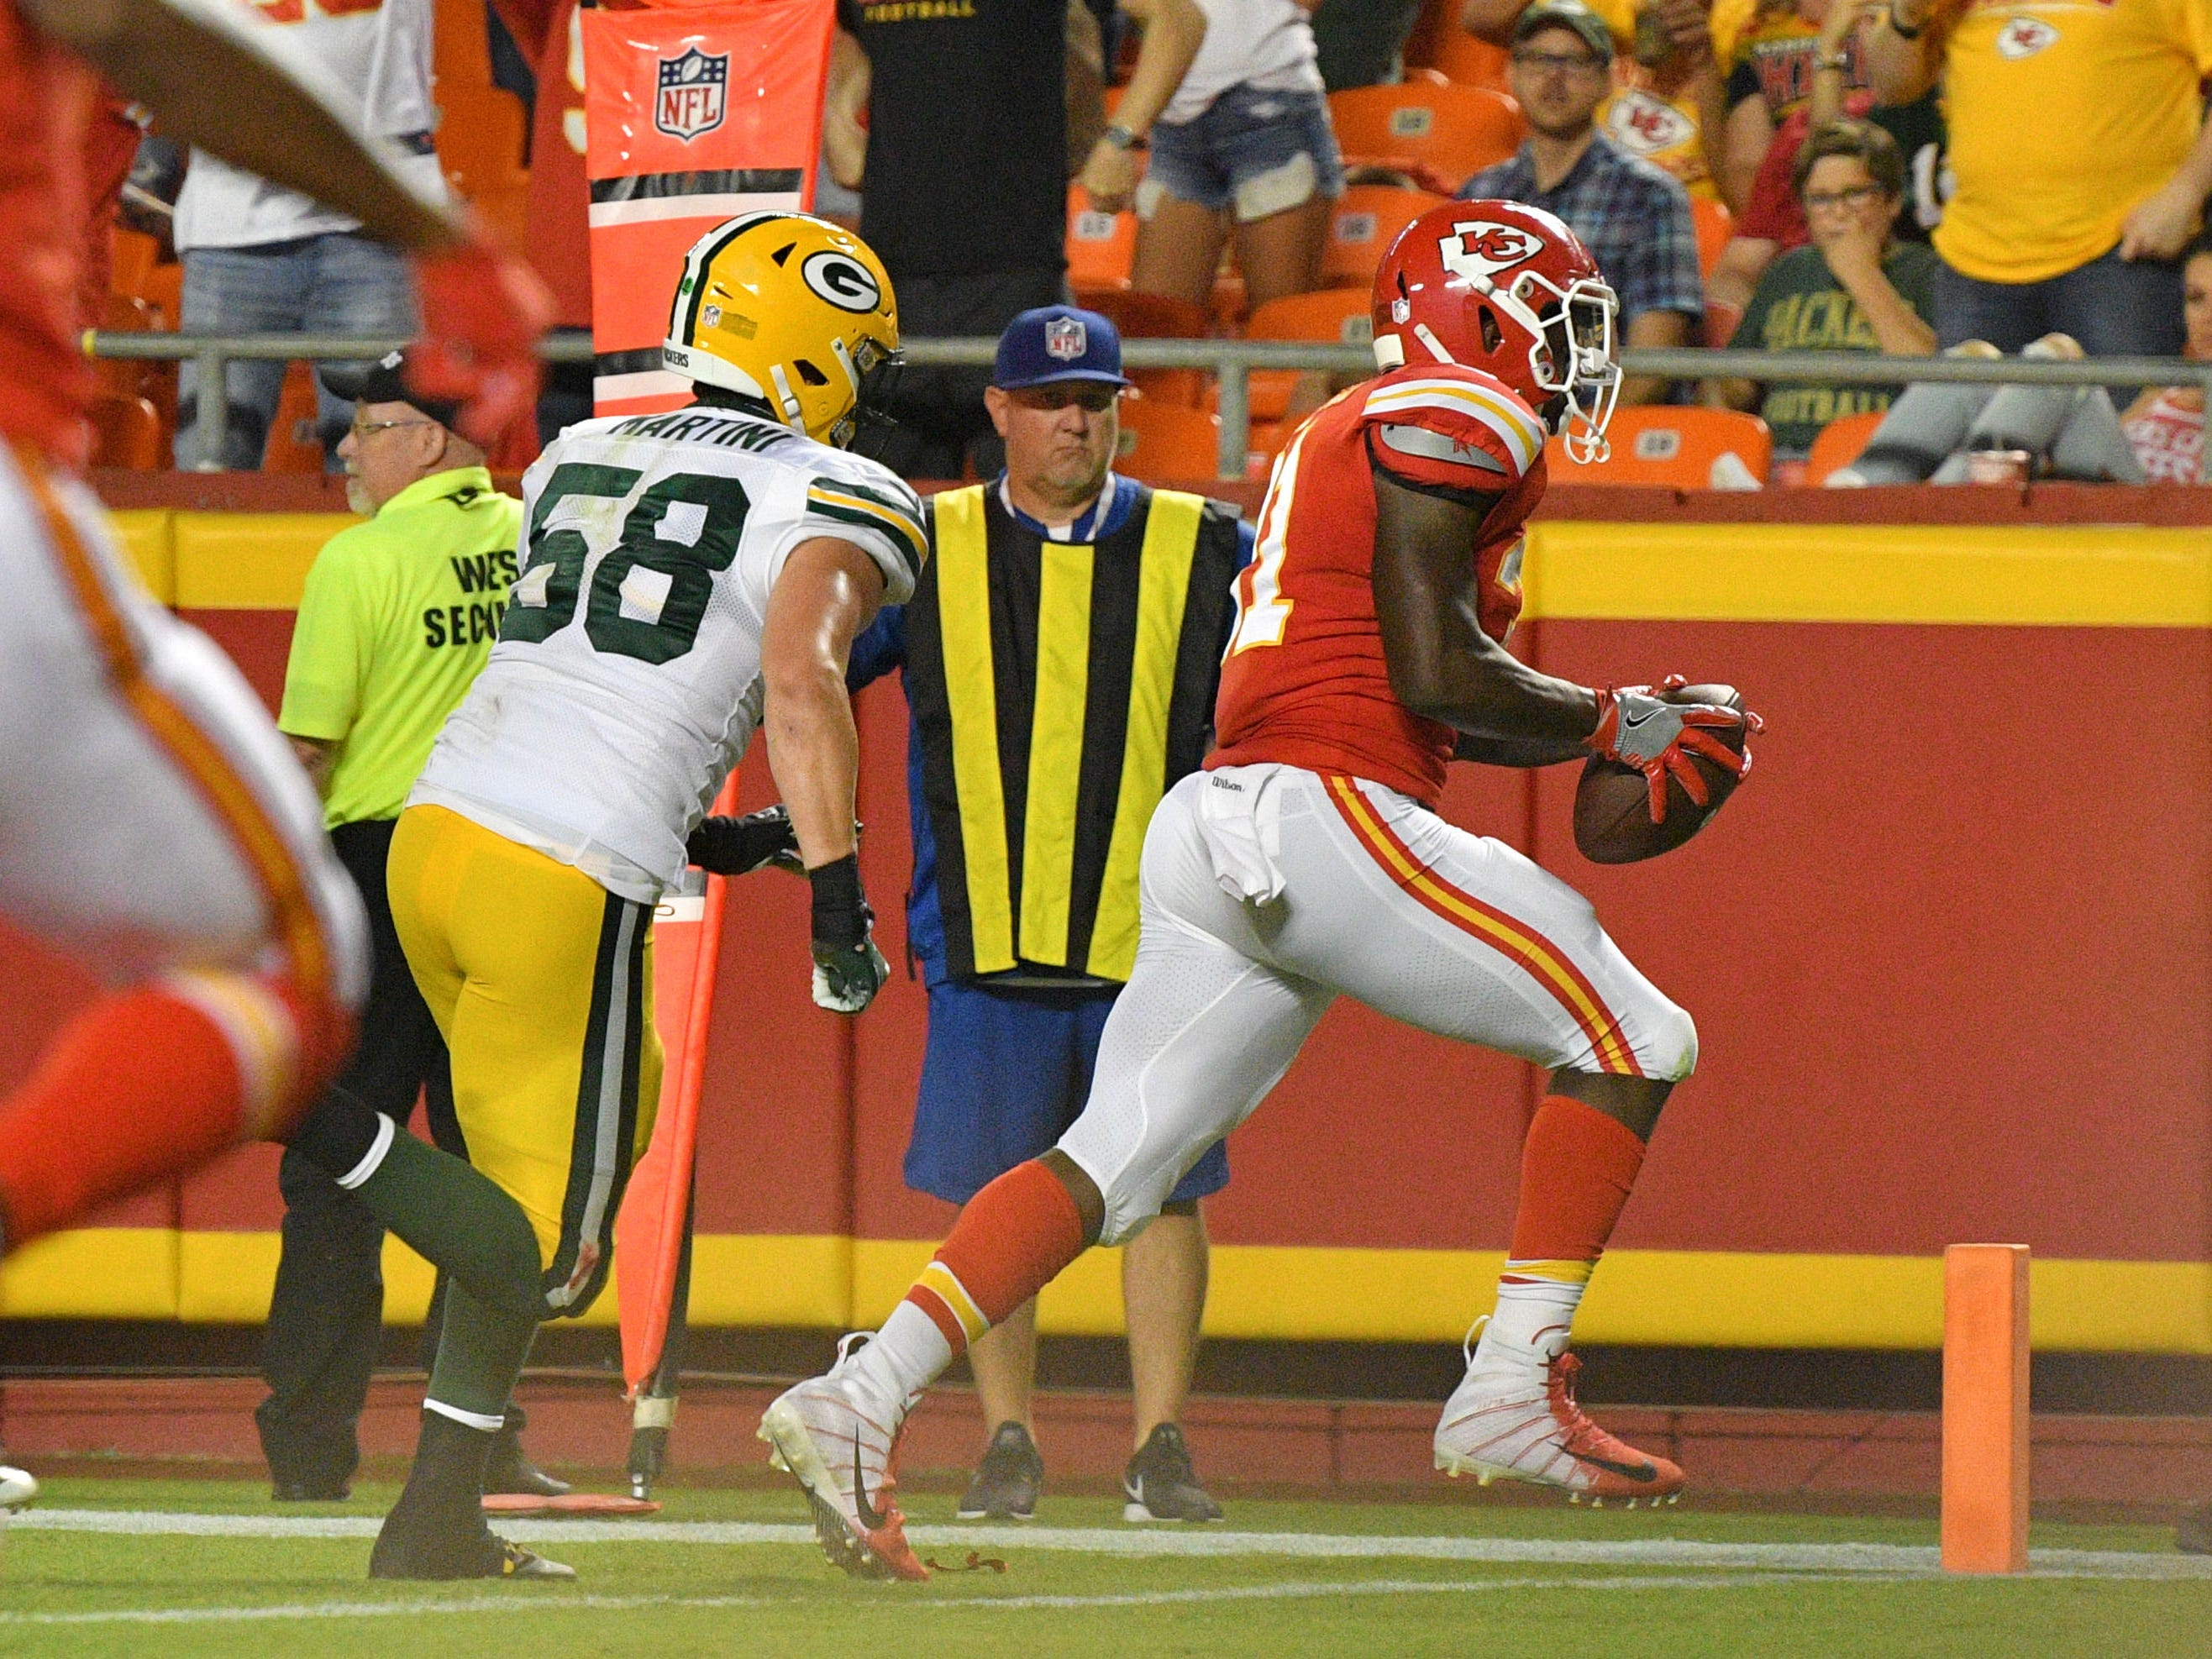 Aug 30, 2018; Kansas City, MO, USA; Kansas City Chiefs running back Darrel Williams (31) scores as Green Bay Packers linebacker Greer Martini (58) chases during the first half at Arrowhead Stadium.